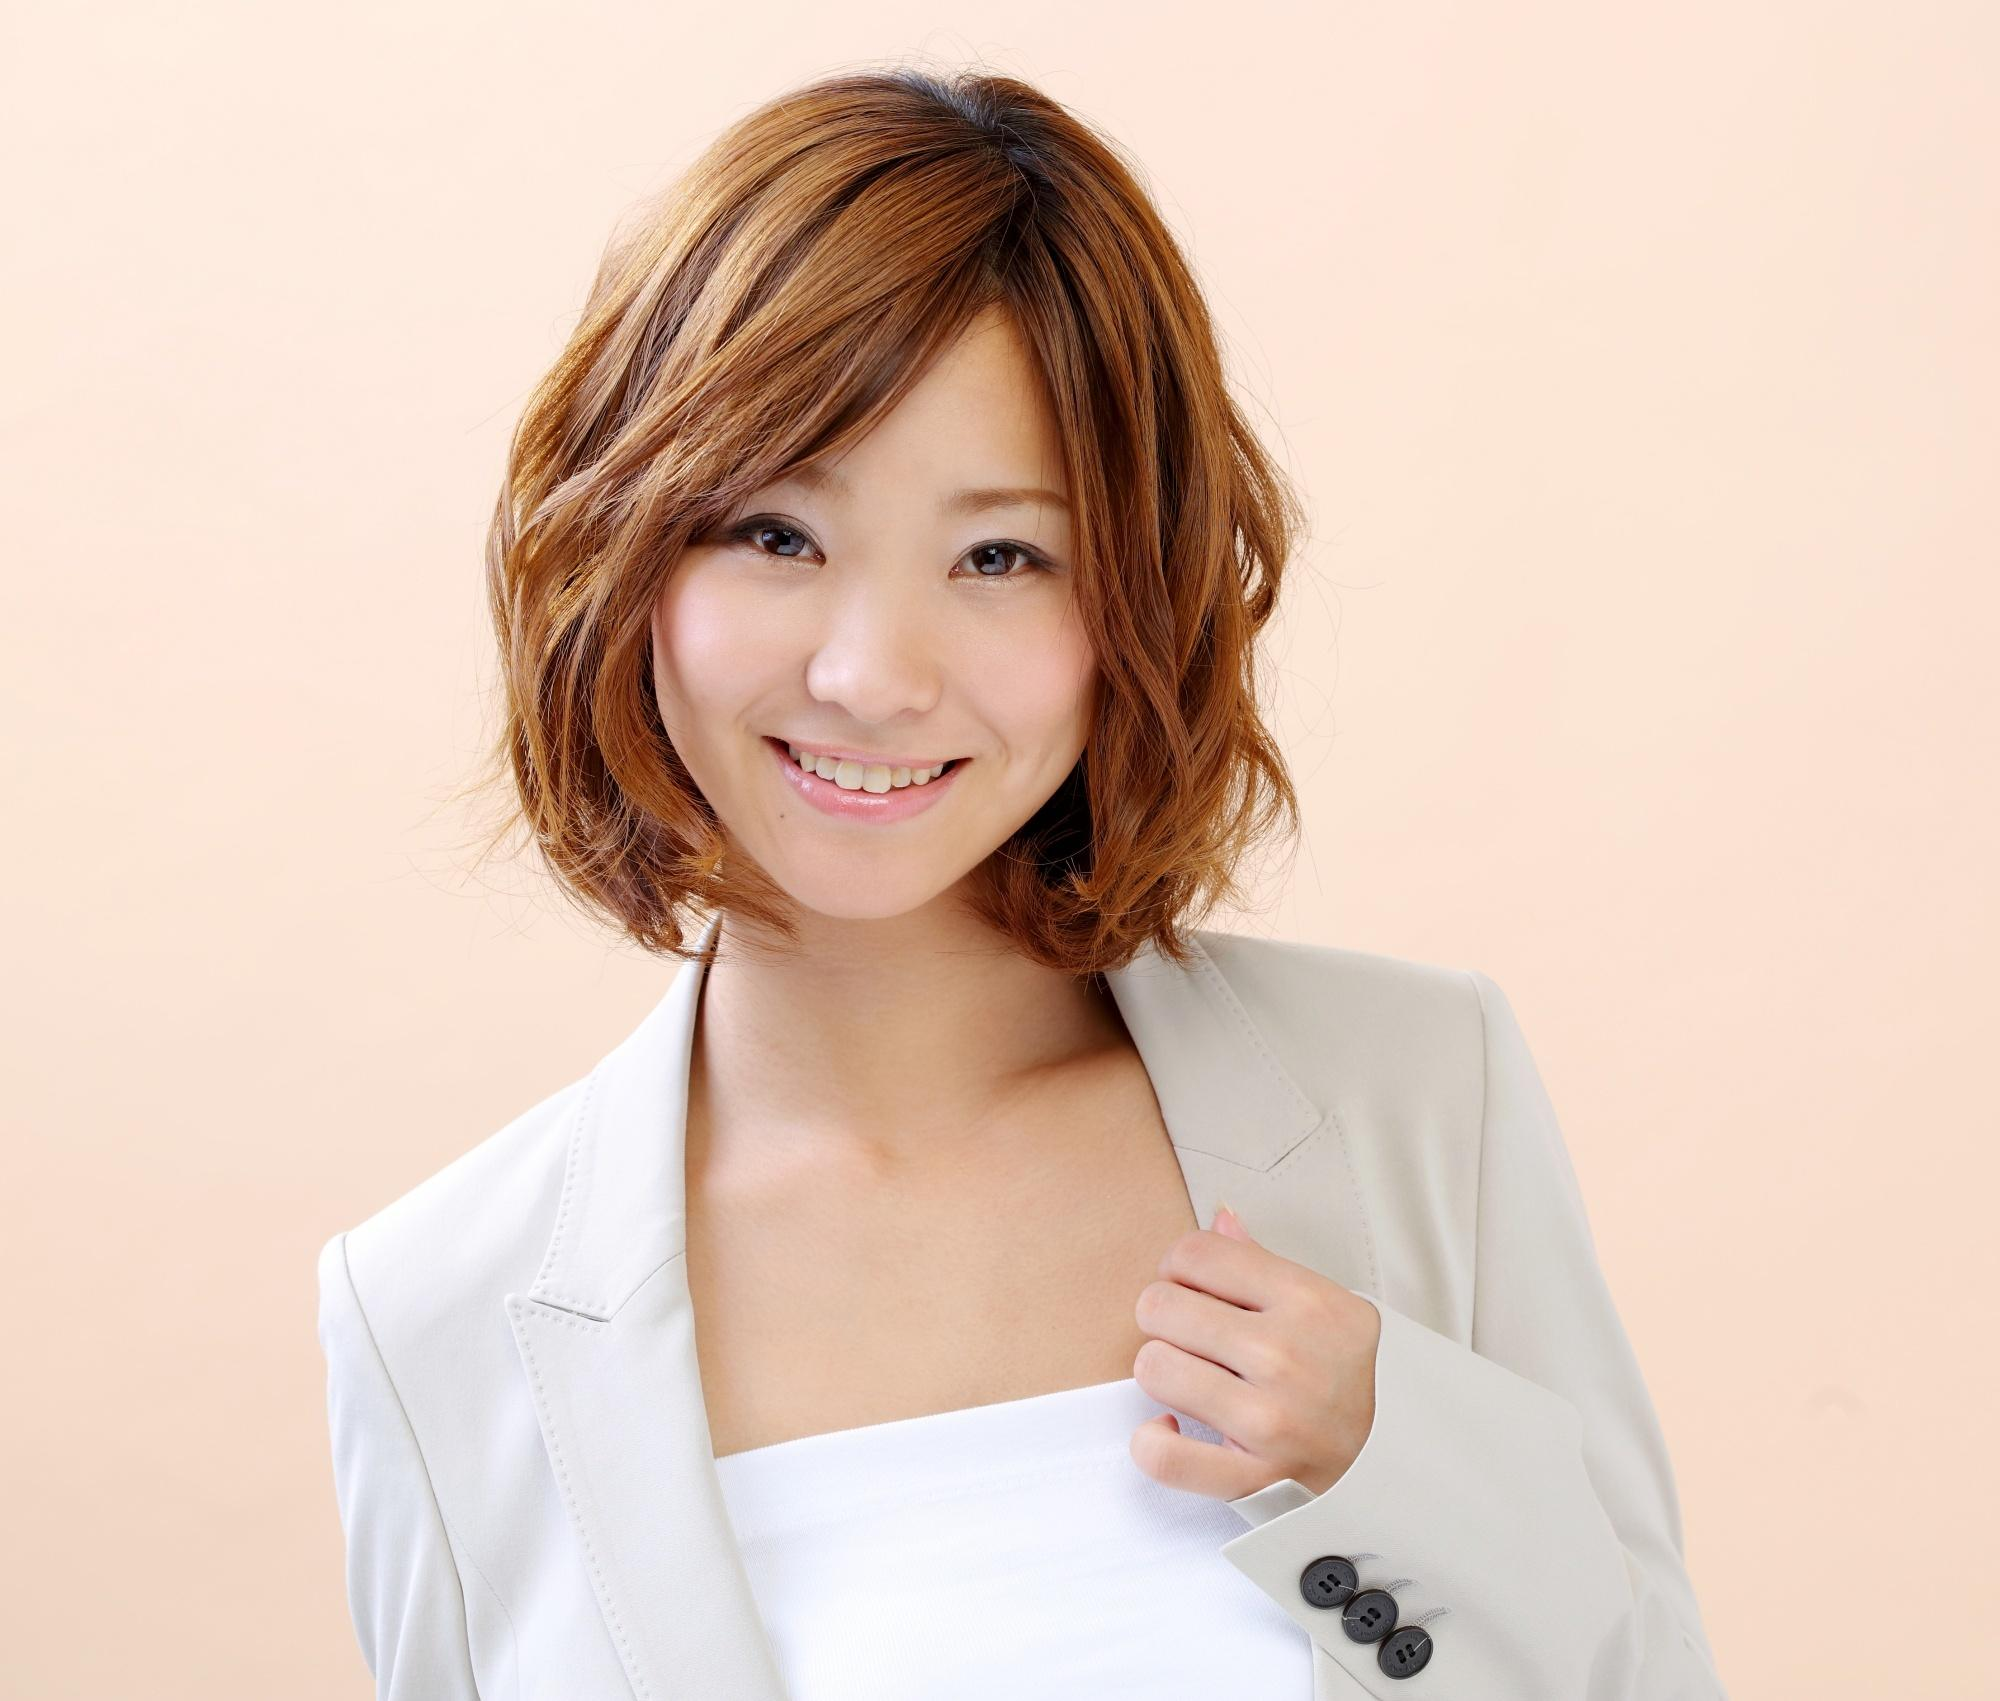 Asian woman with short brown wavy hair wearing a blazer and smiling